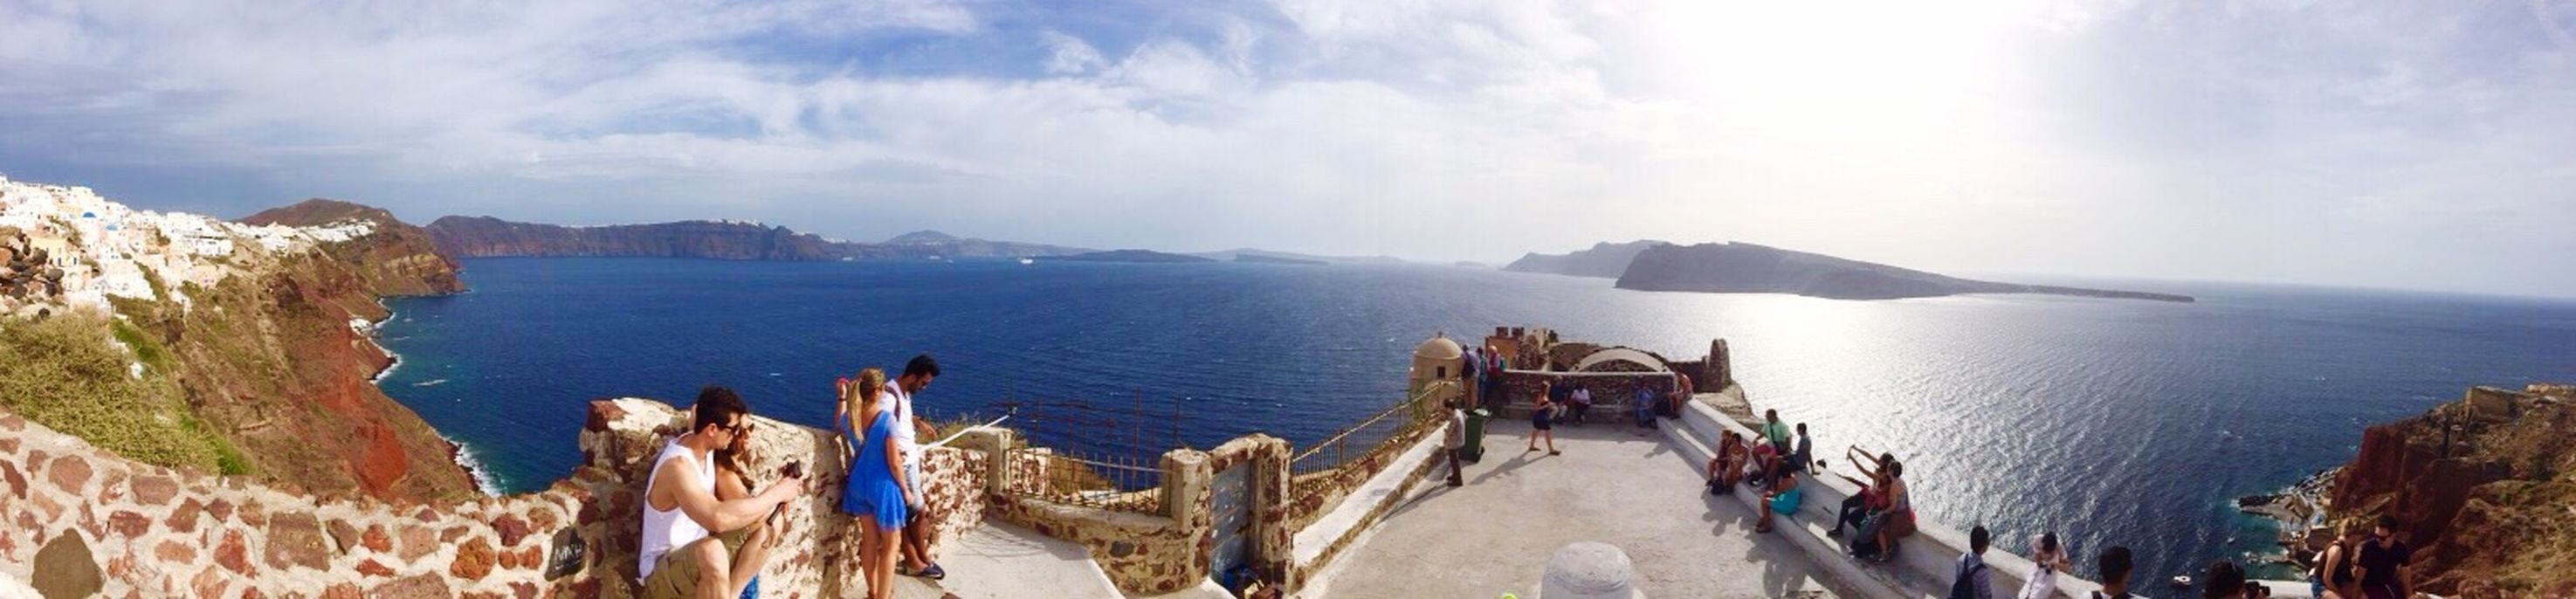 Happiness From Santorini With Love Traveling Panoramas Of Santorini Taking Photos